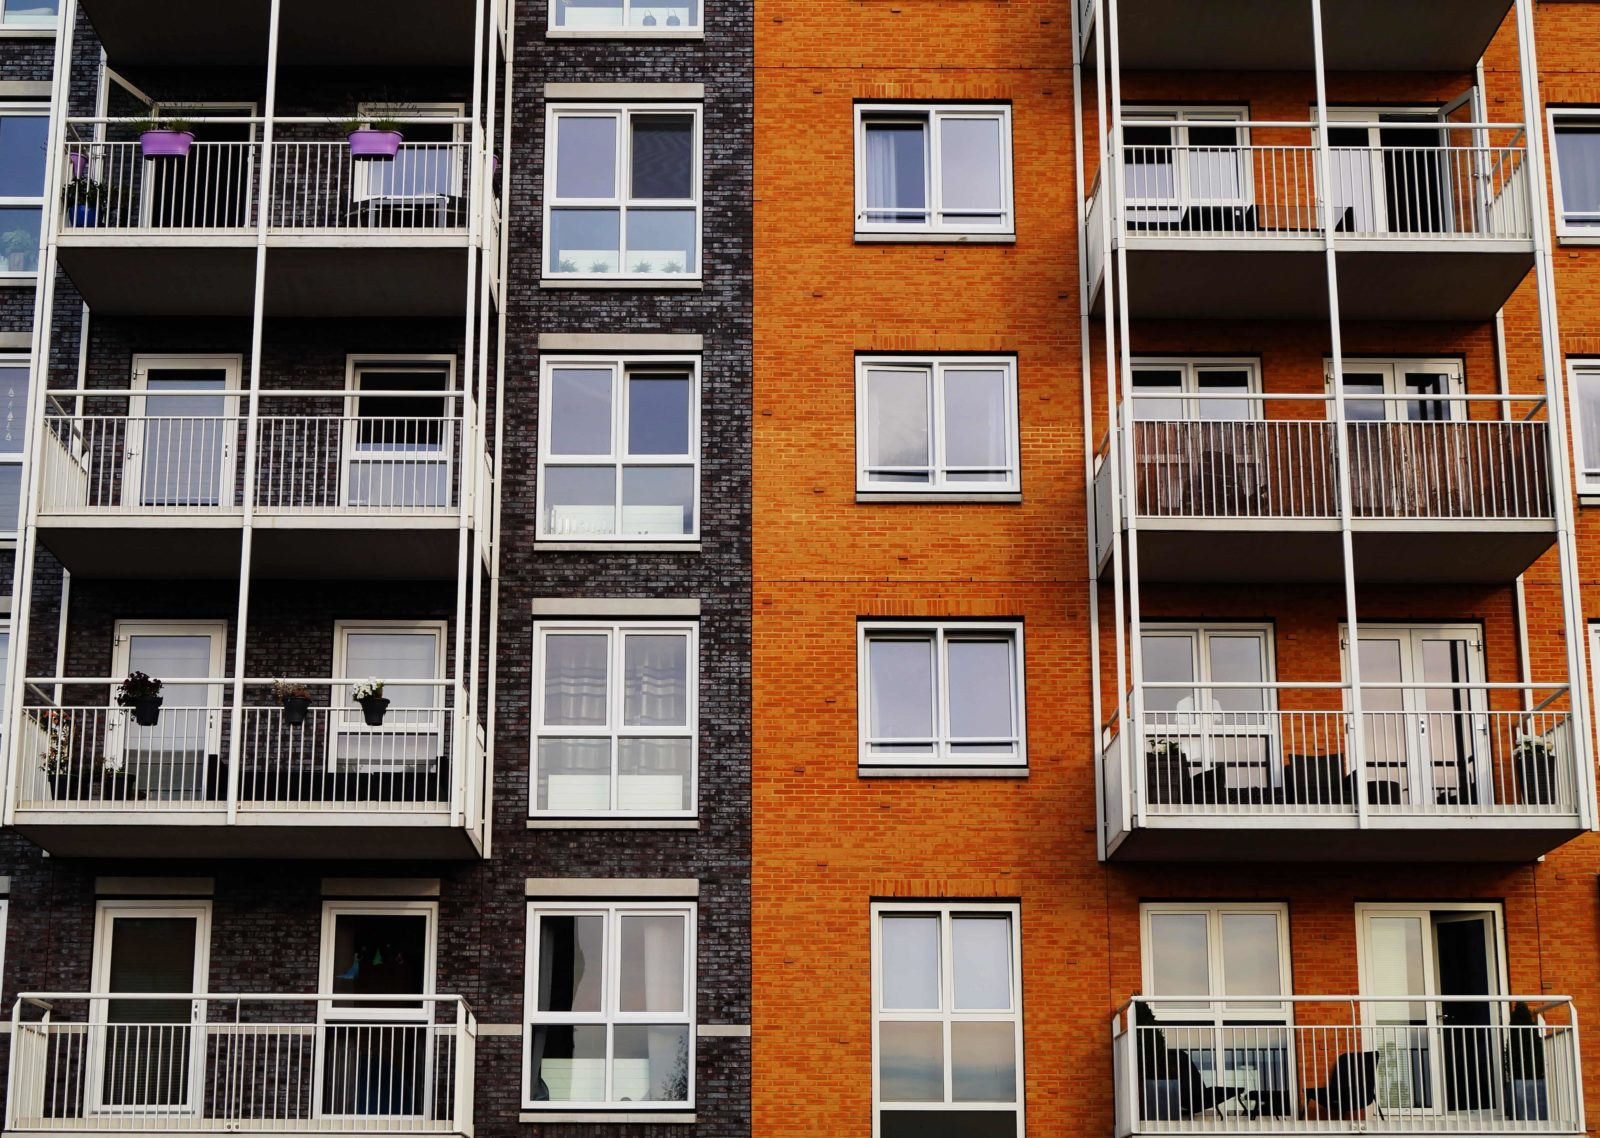 Image of apartments.